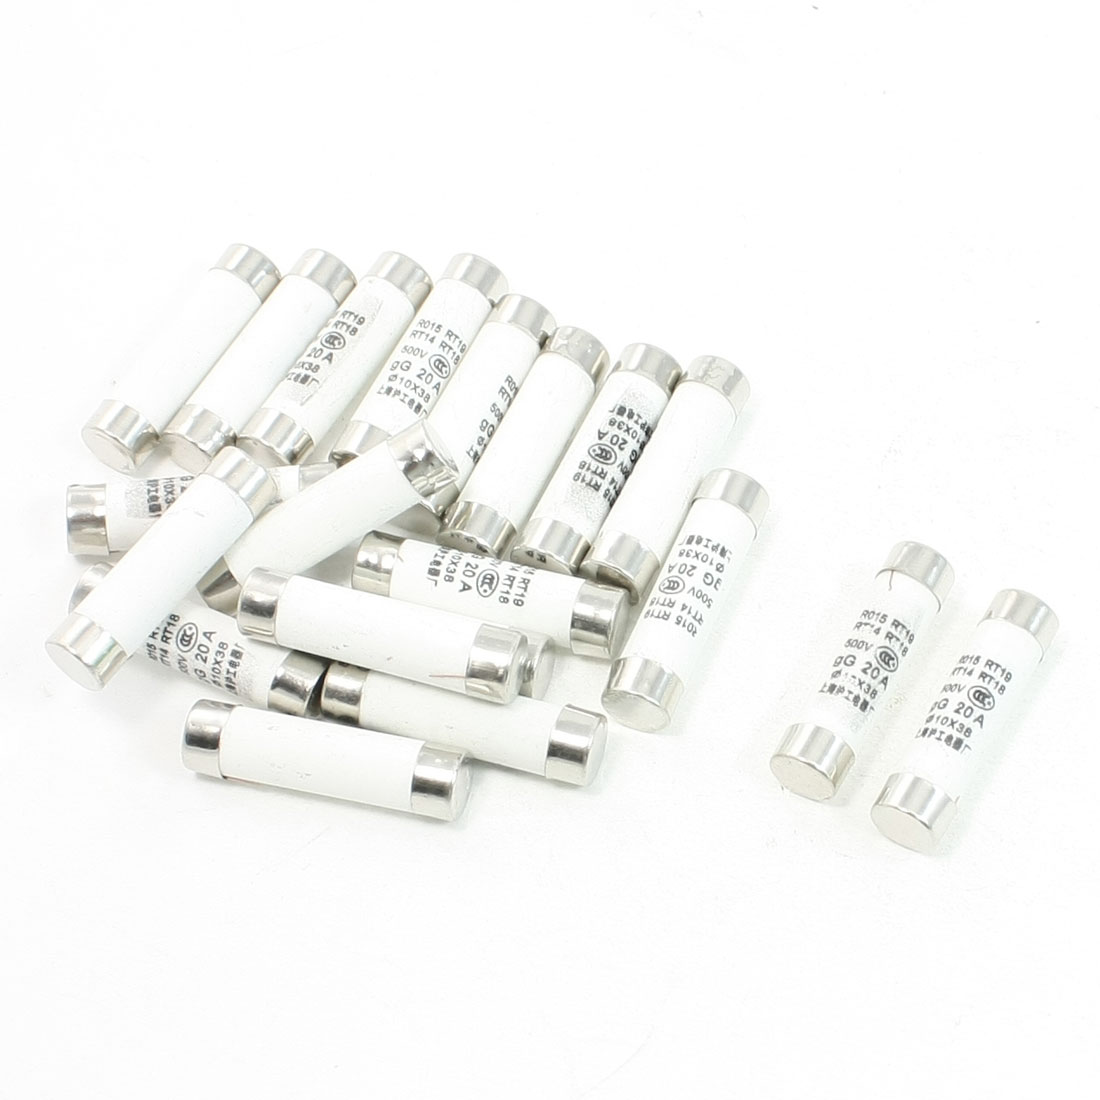 20 Pcs 500V 20A 10x38mm Cylindrical Ceramic Tube Fuses Link R015 RT14 RT18 RT19